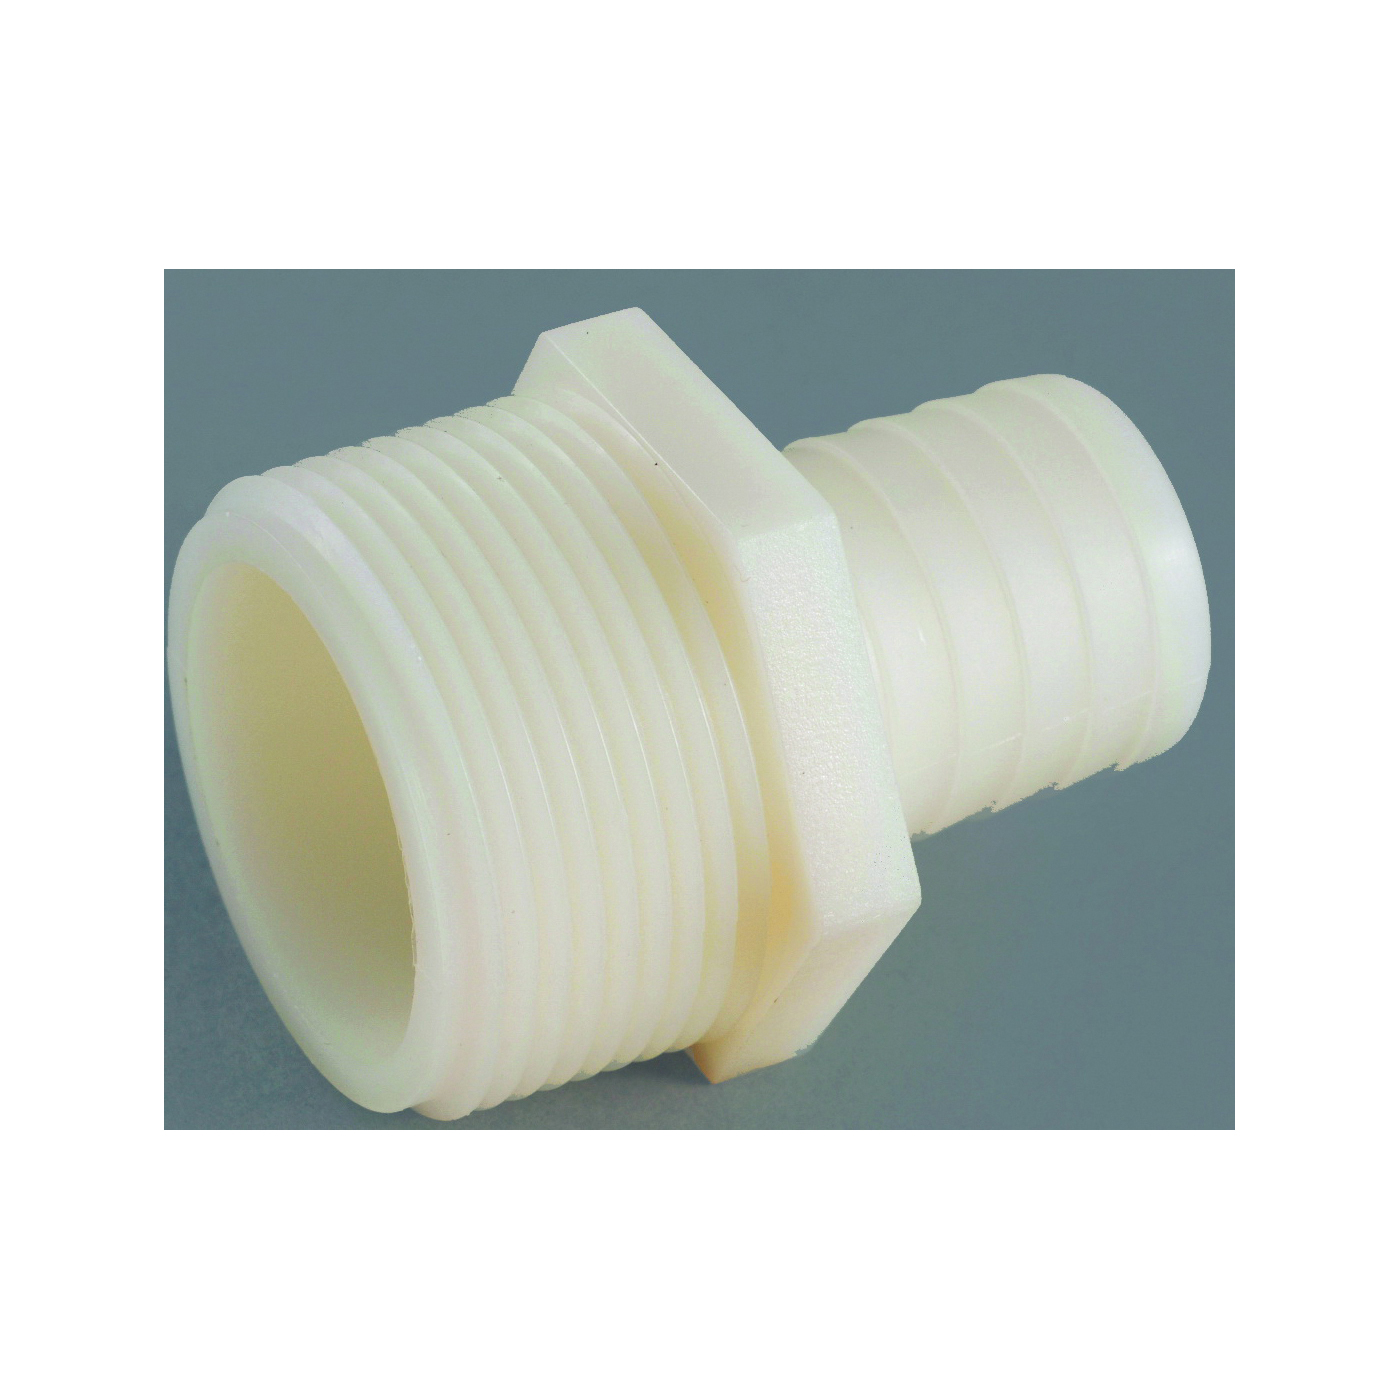 Picture of Anderson Metals 53701-0402 Hose Adapter, 1/8 in, Barb, 1/4 in, MIP, 150 psi Pressure, Nylon